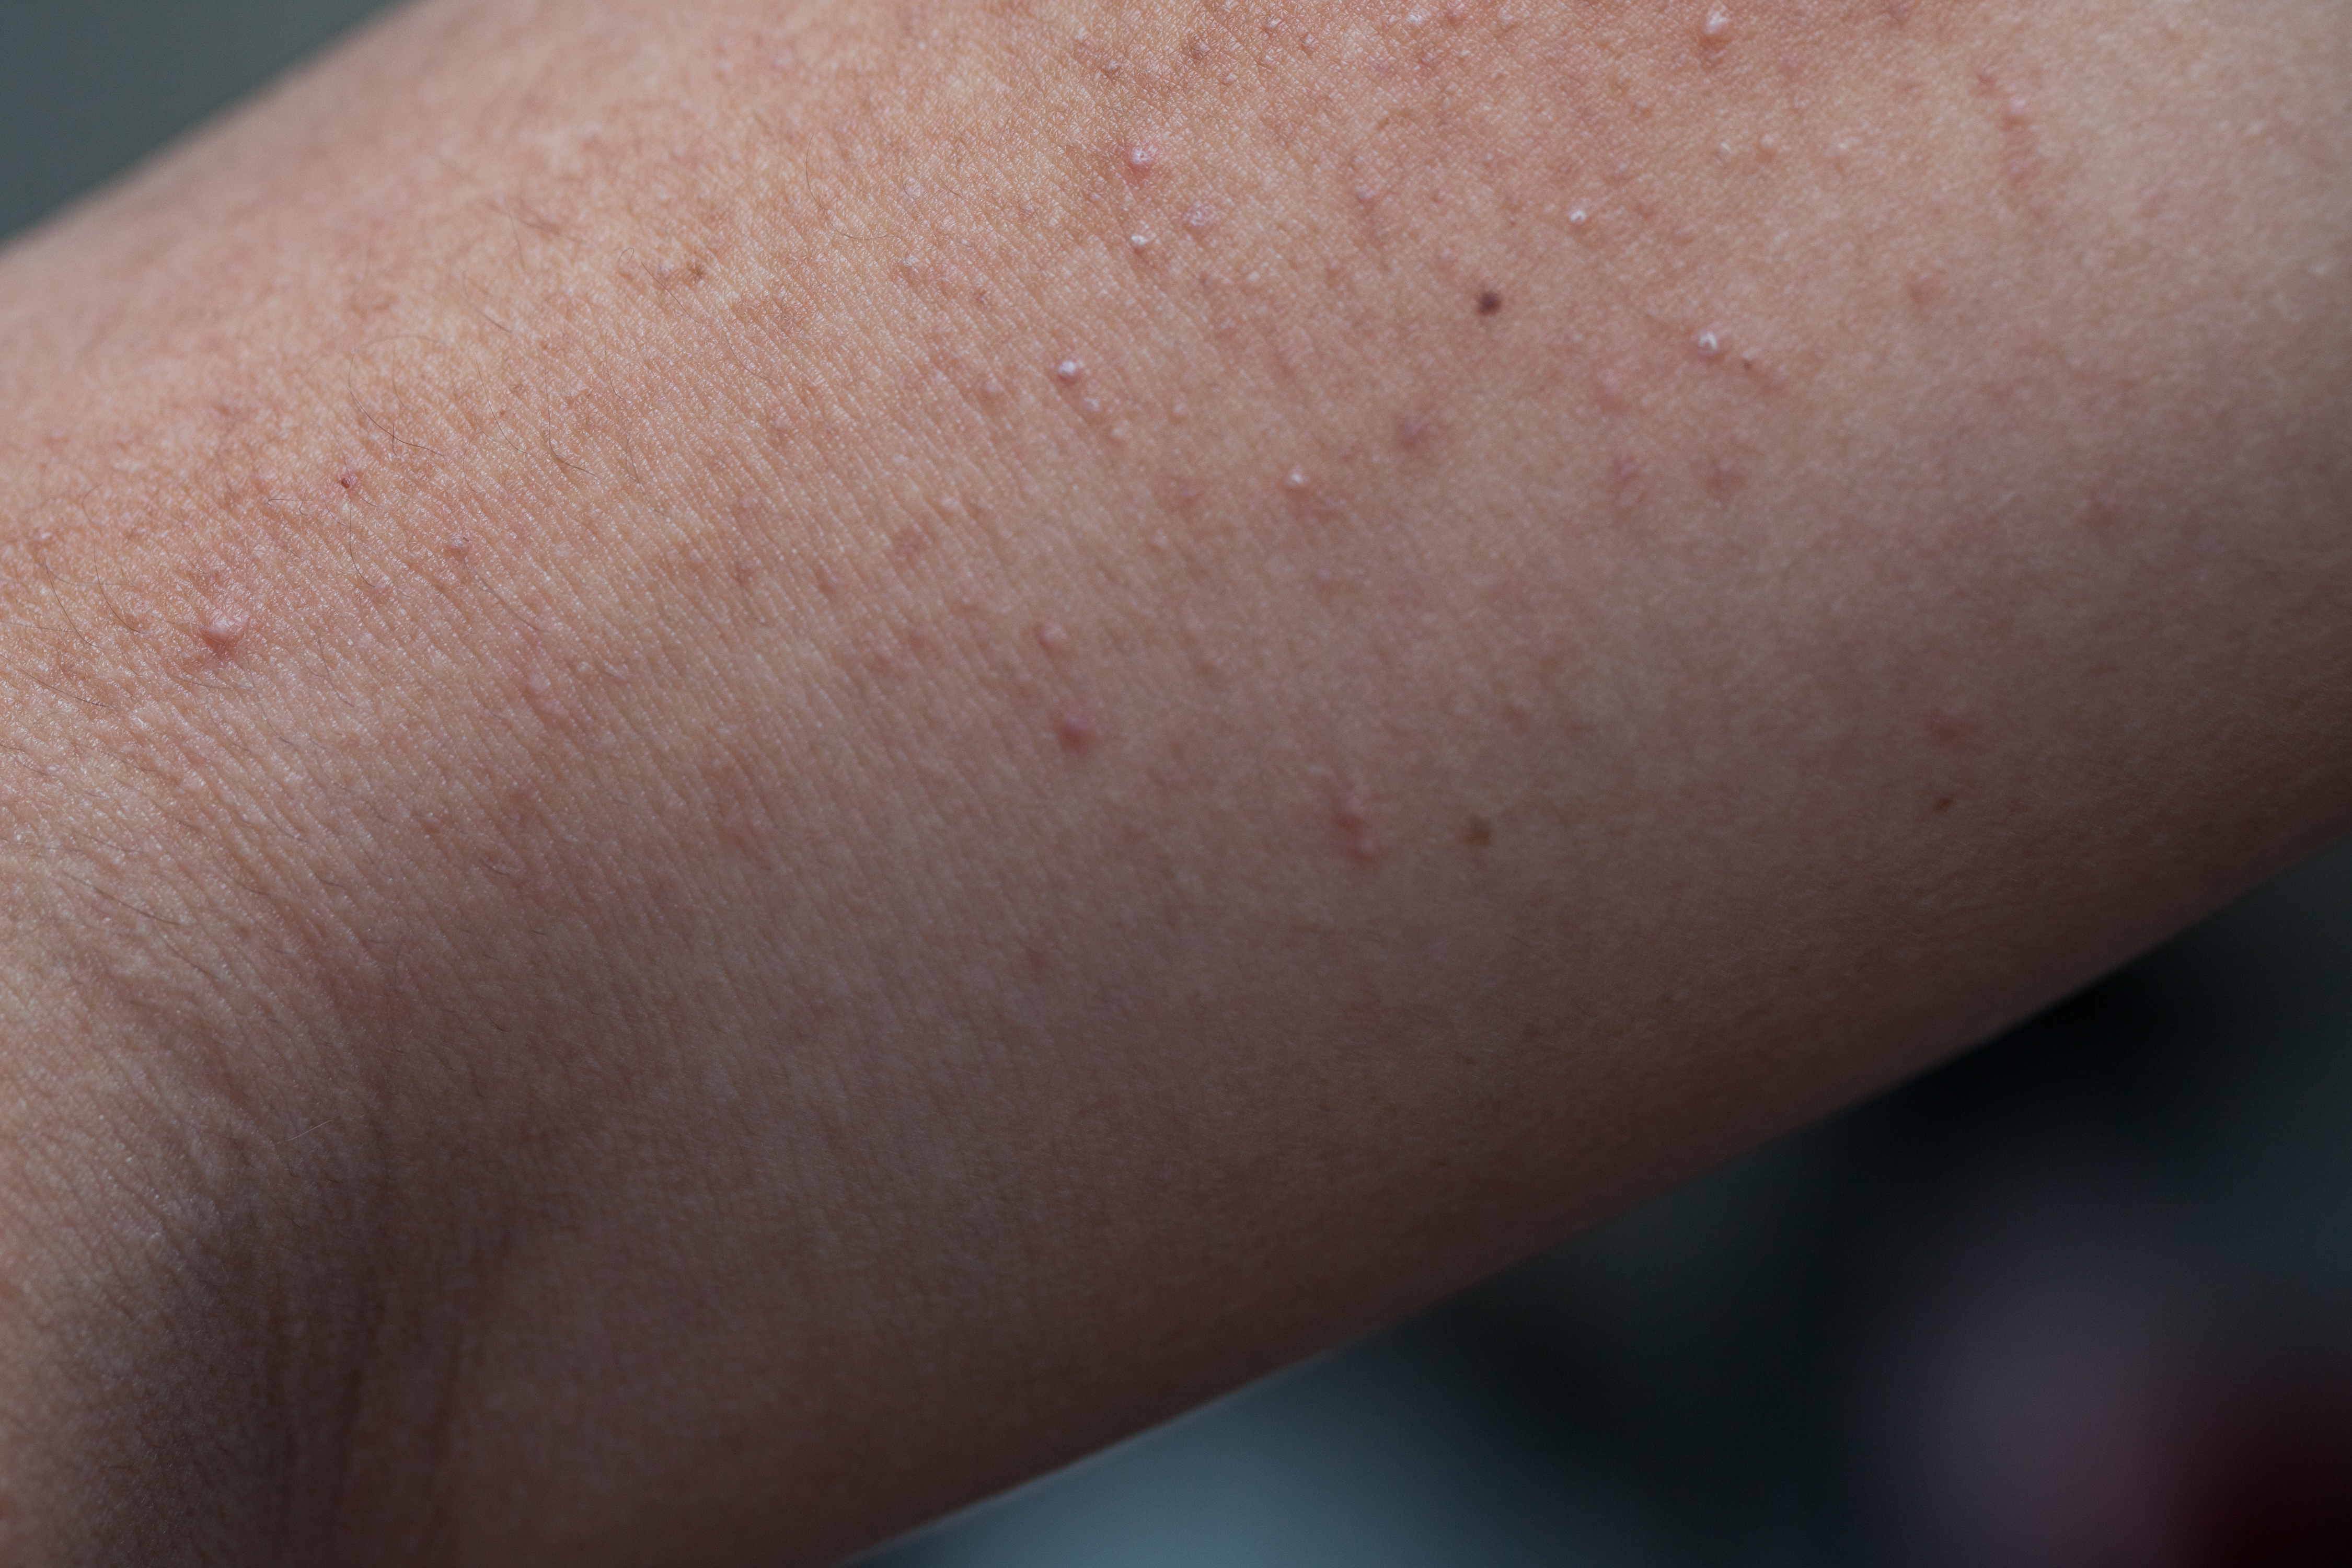 Bactrim to Treat Acne